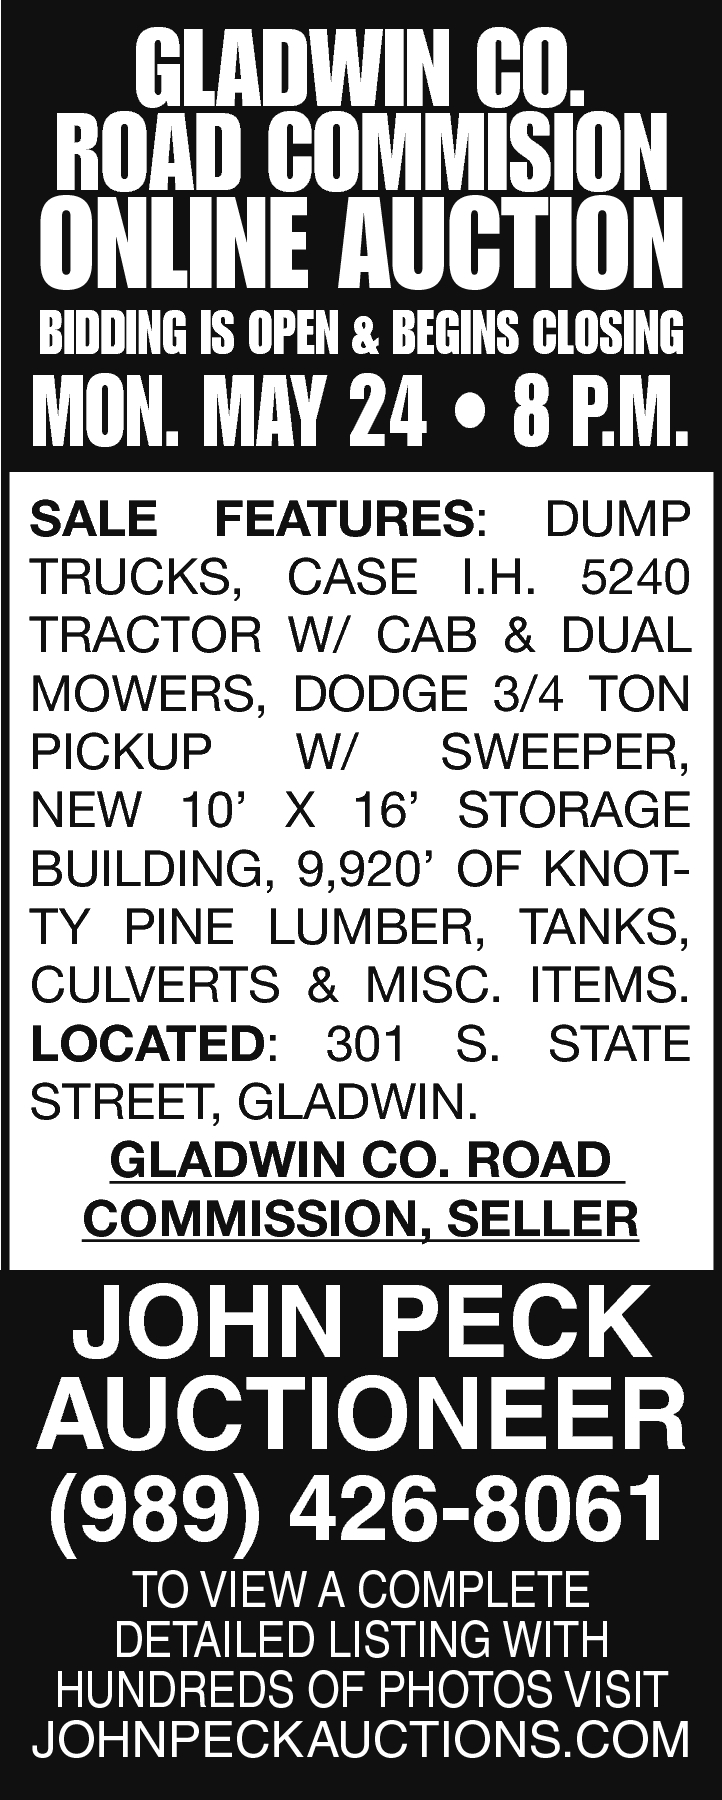 Gladwin Co. Road Commision Online Auction